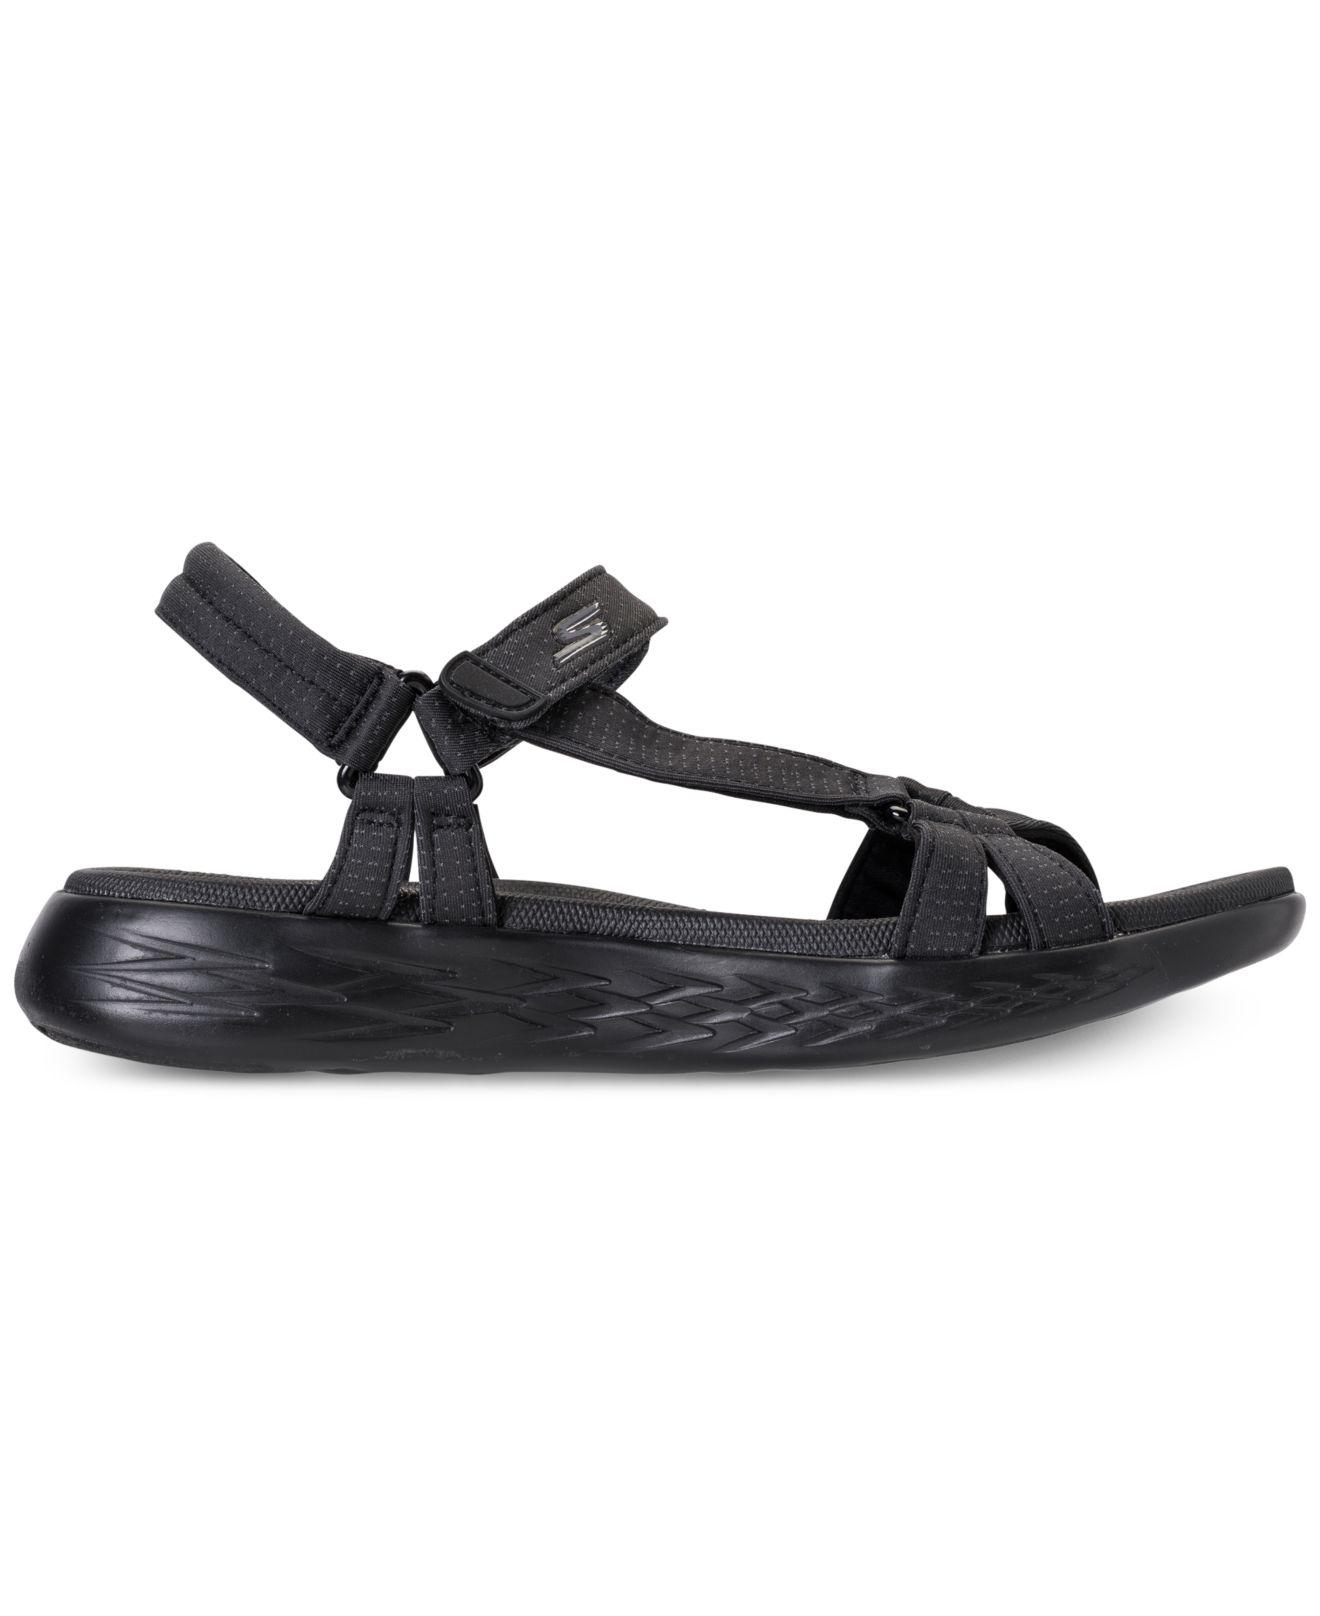 2ed6313c96fd Lyst - Skechers On The Go 600 - Brilliancy Athletic Sandals From Finish Line  in Black